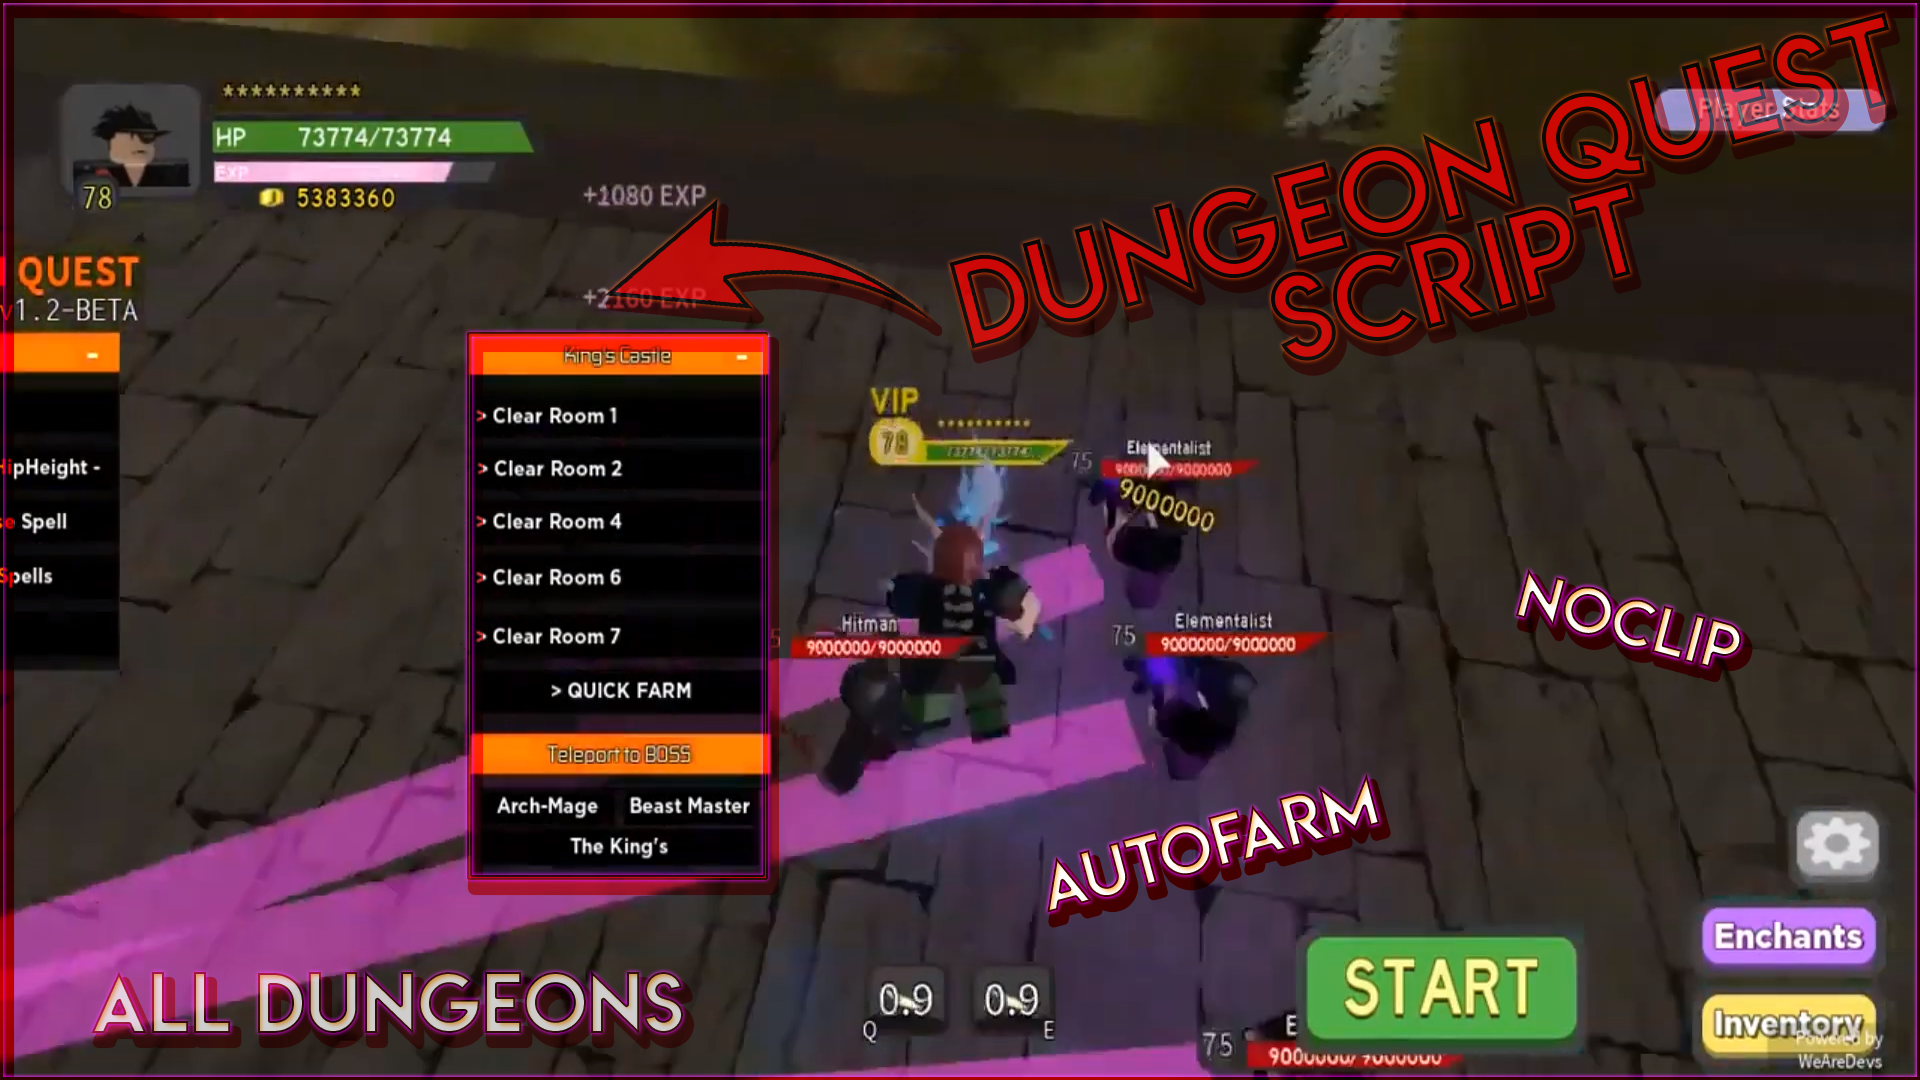 New Dungeon Quest Hack Script Auto Farm Auto Attack Auto Use Spells Speedhack Teletype